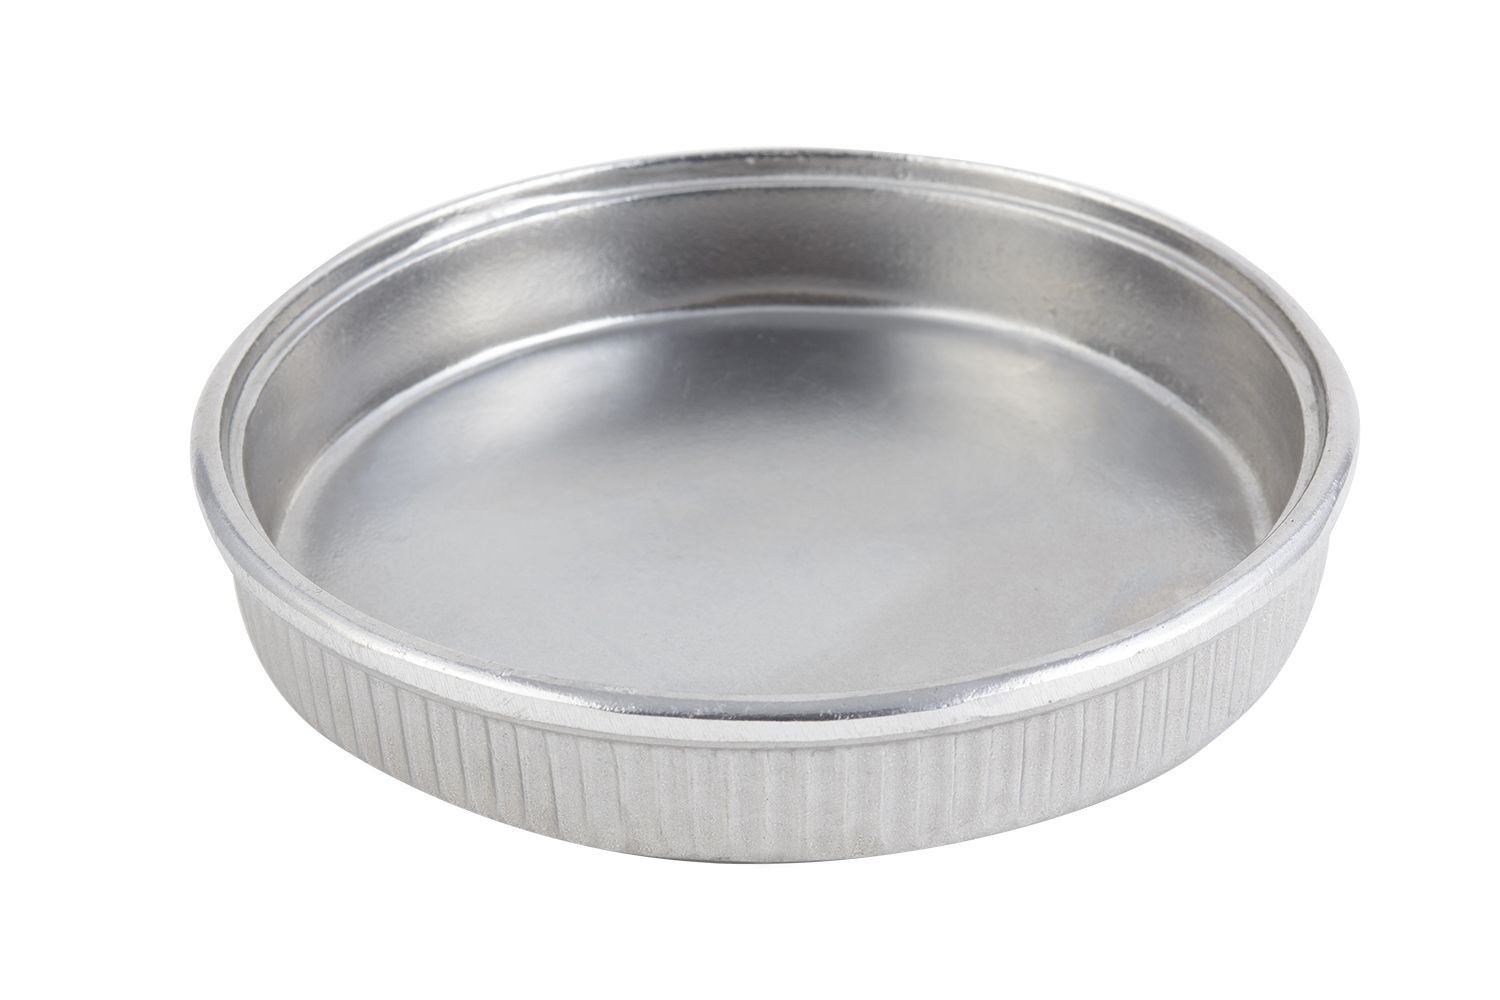 Bon Chef 9000P Tortilla Bowl, Pewter Glo 24 oz., Set of 6